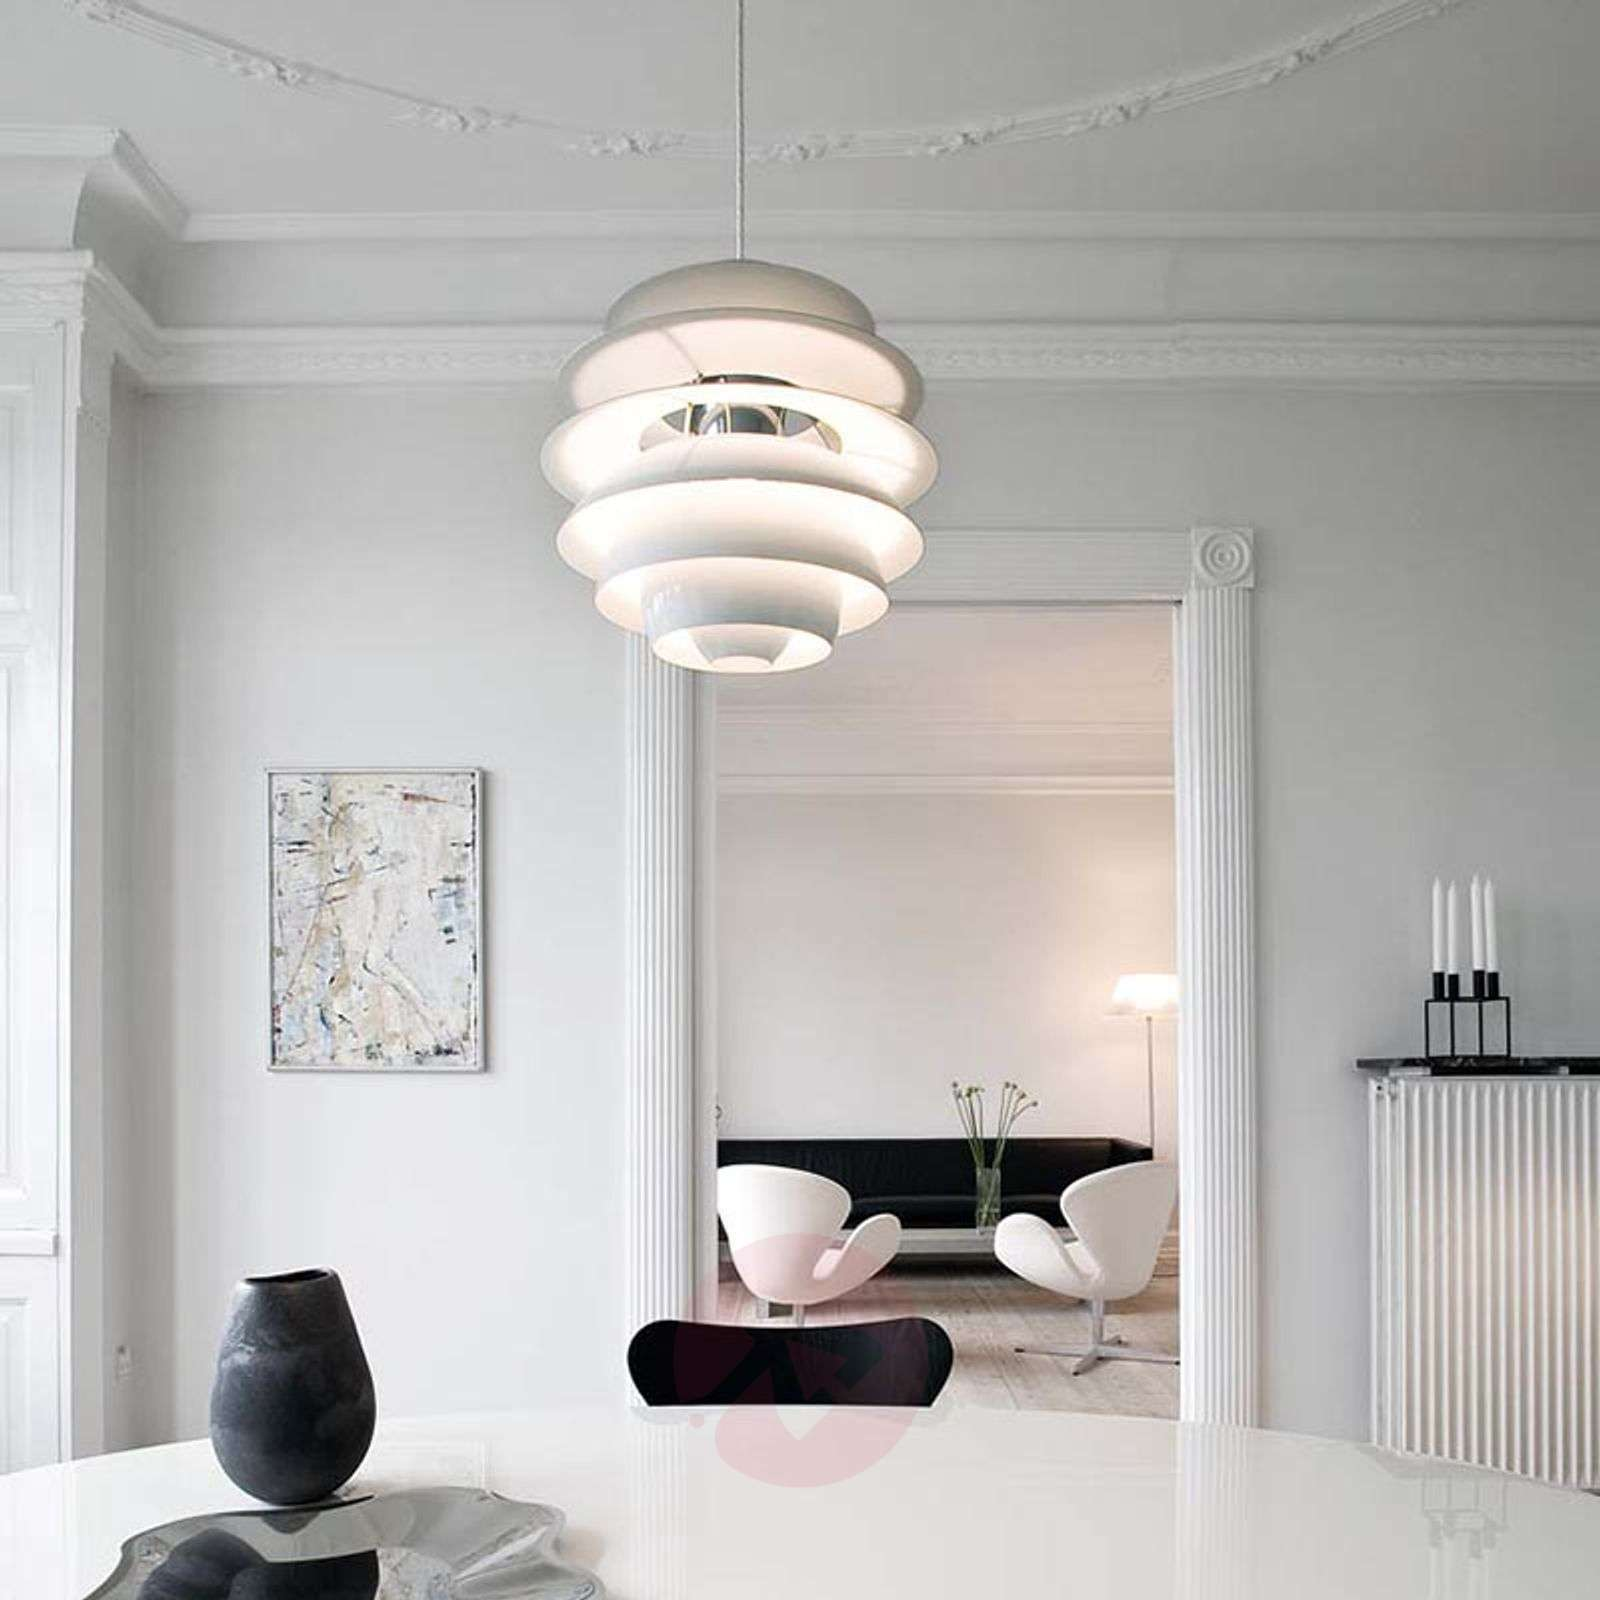 Fascinerende hanglamp PH Snowball-6090054-01